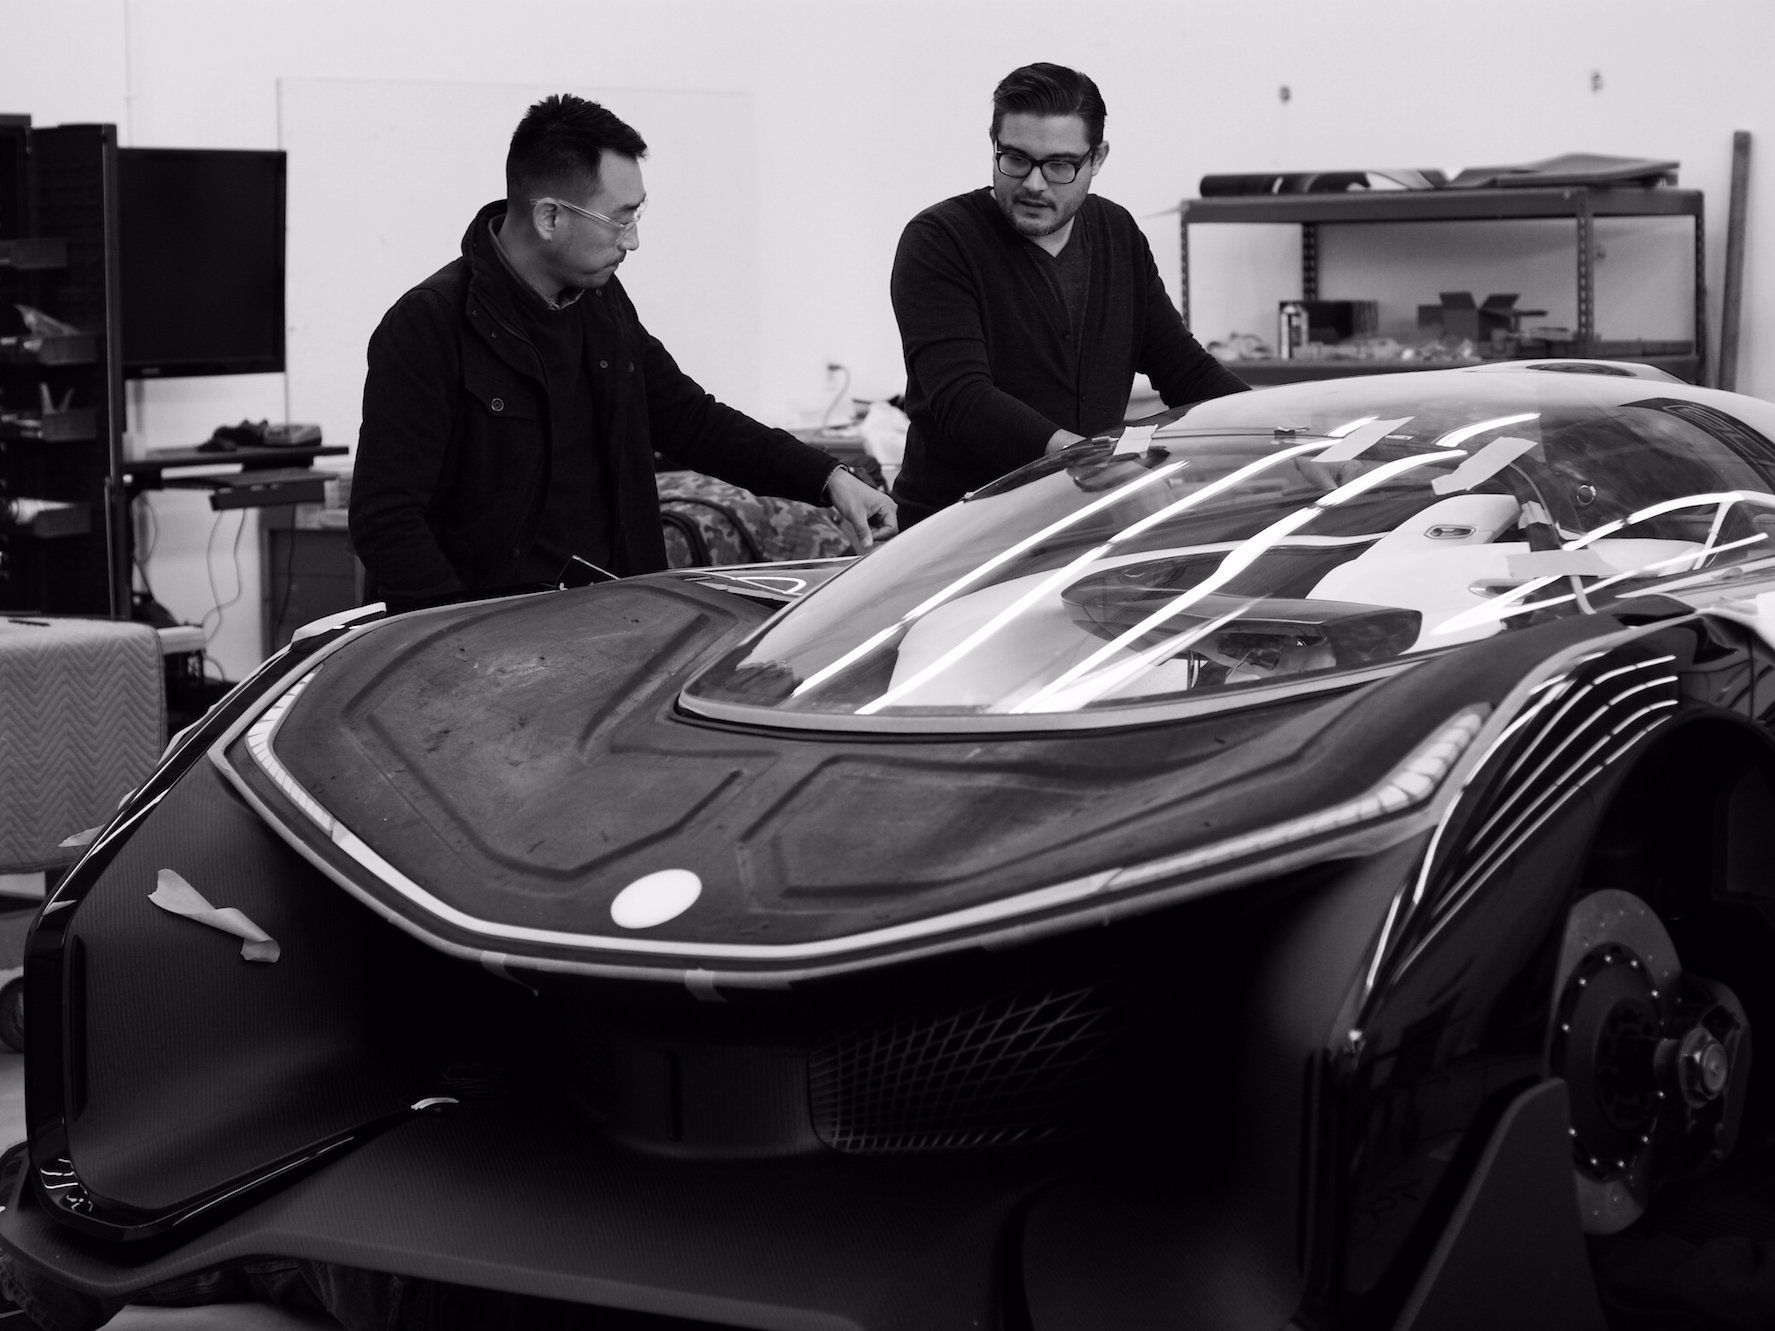 Tesla Rival Faraday Future Just Revealed Its Vision Of The Cars